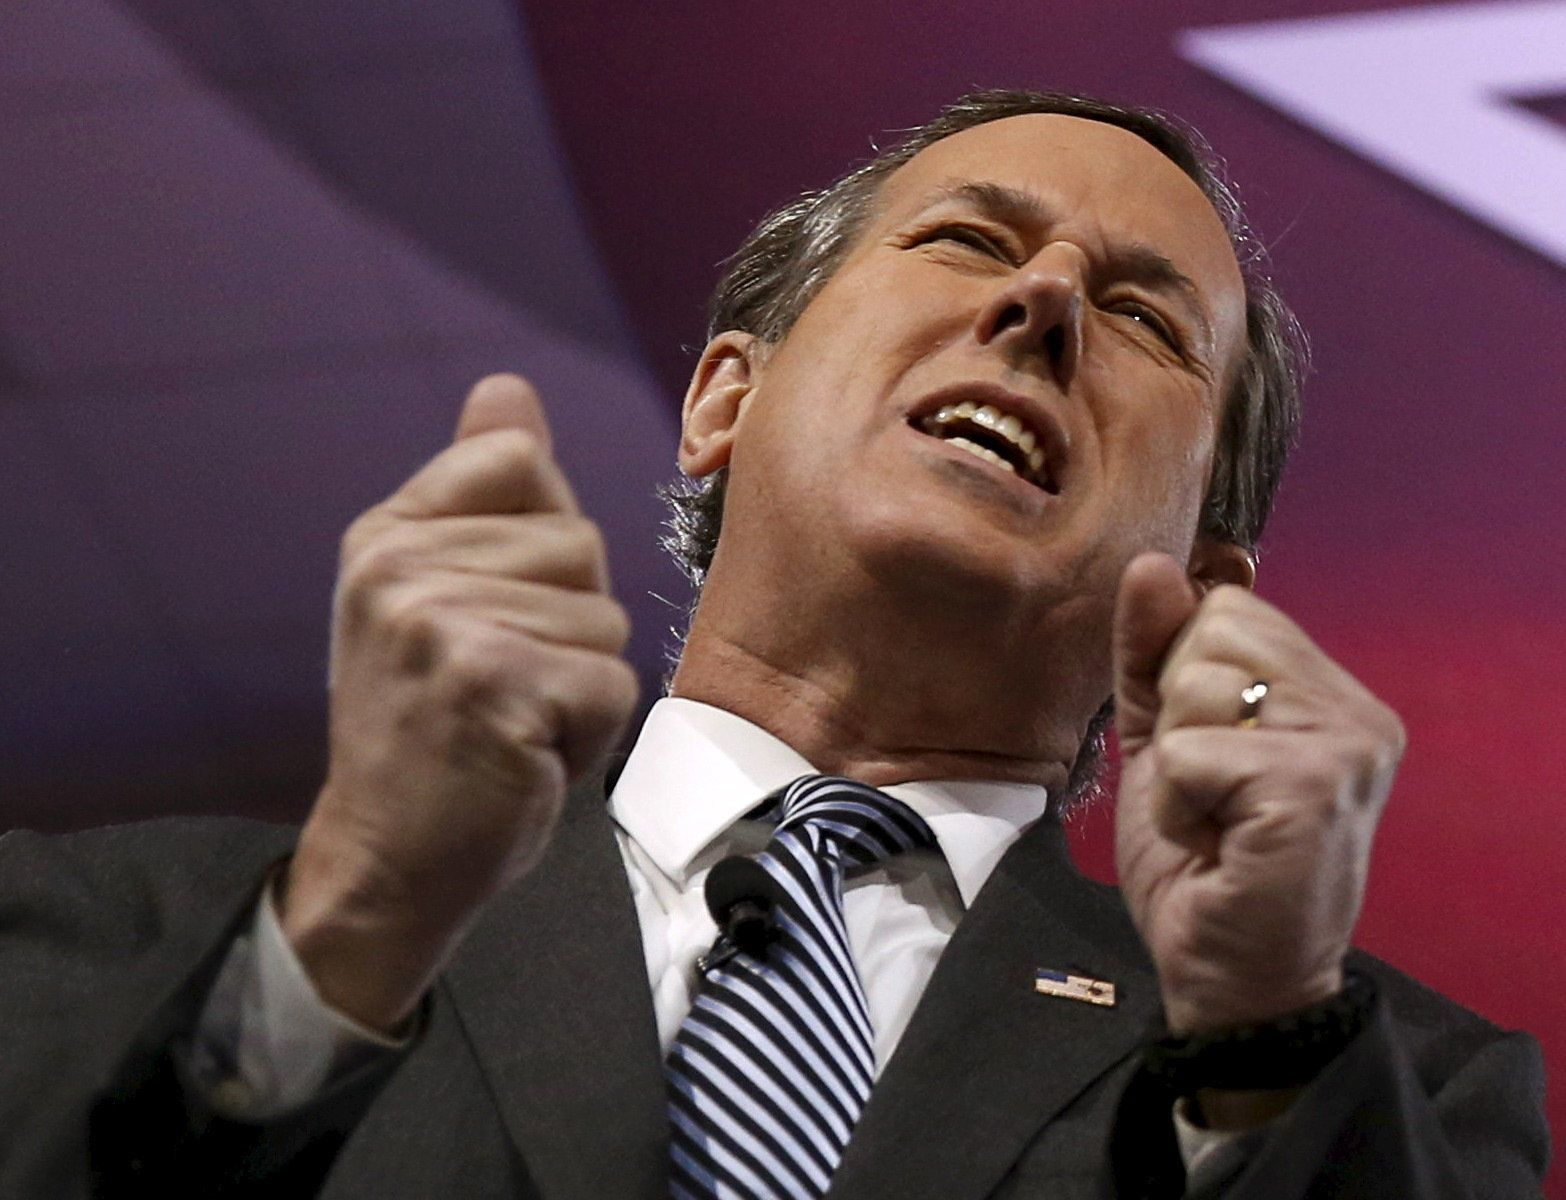 Former Senator Rick Santorum (R-PA) speaks at the American Conservative Union (CPAC) 2016 annual conference in Maryland March 3, 2016.   REUTERS/Gary Cameron